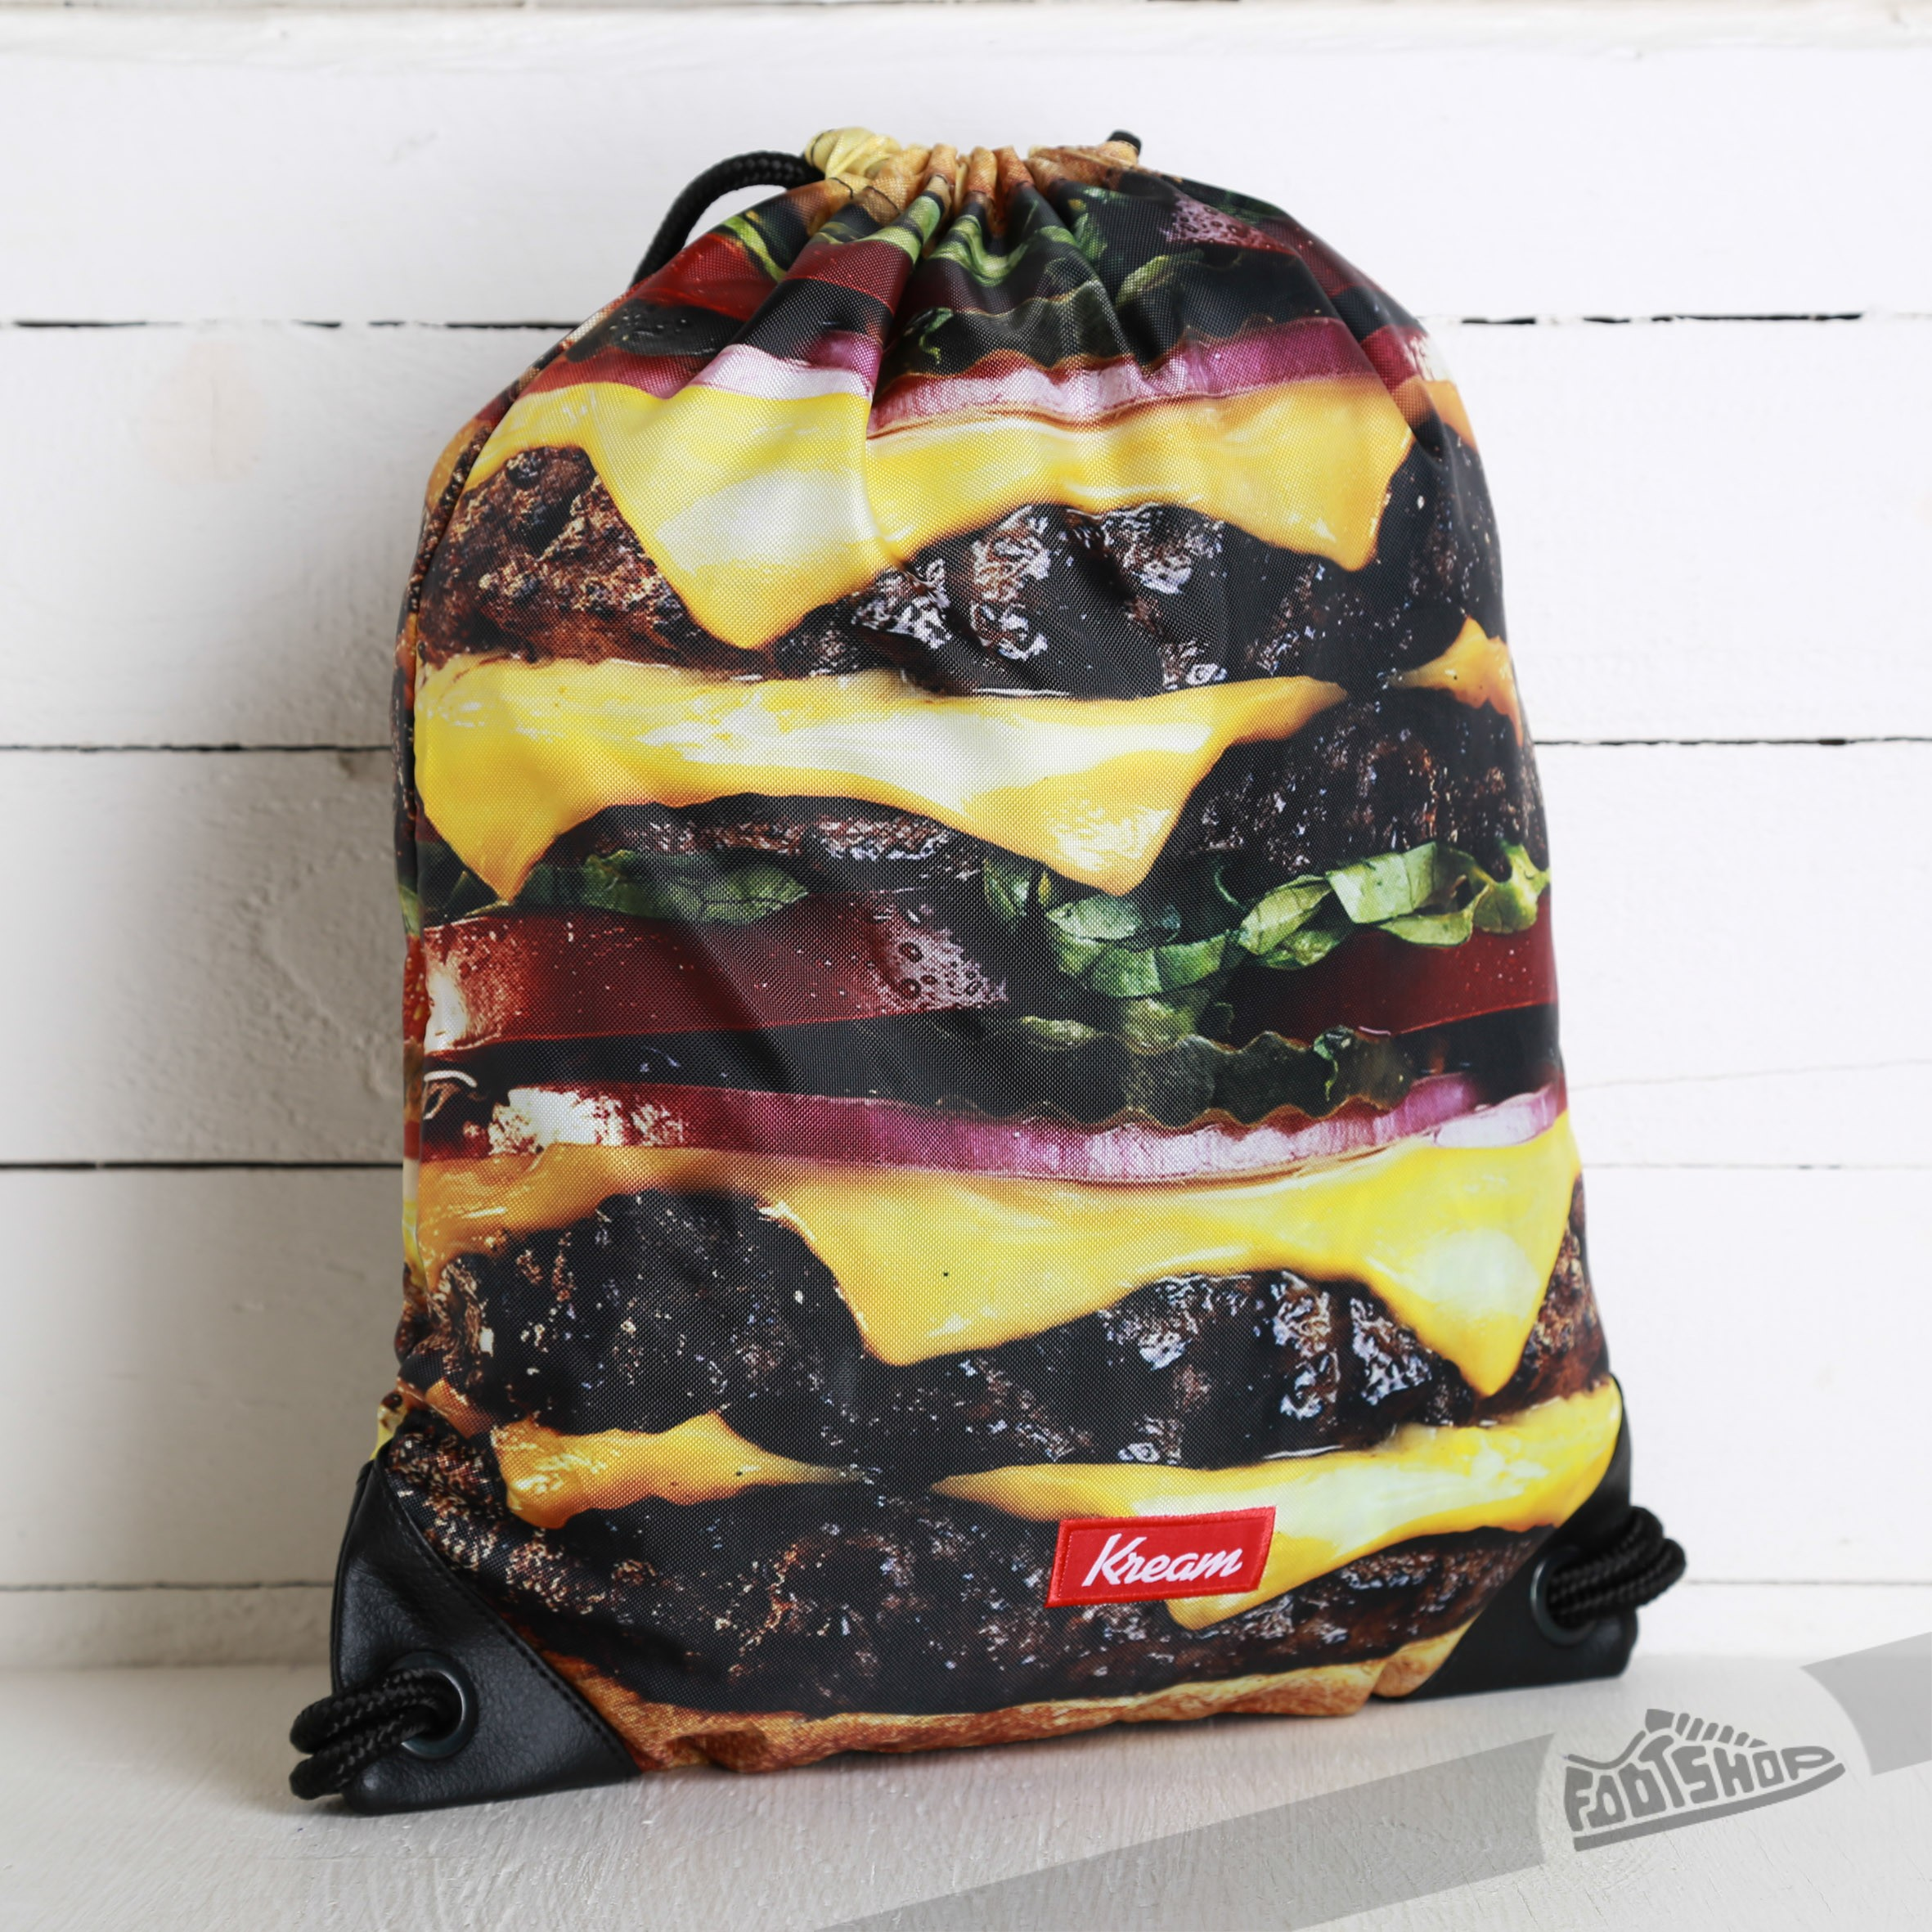 Kream Big Ass Burger Bag Multi Colored - 5802